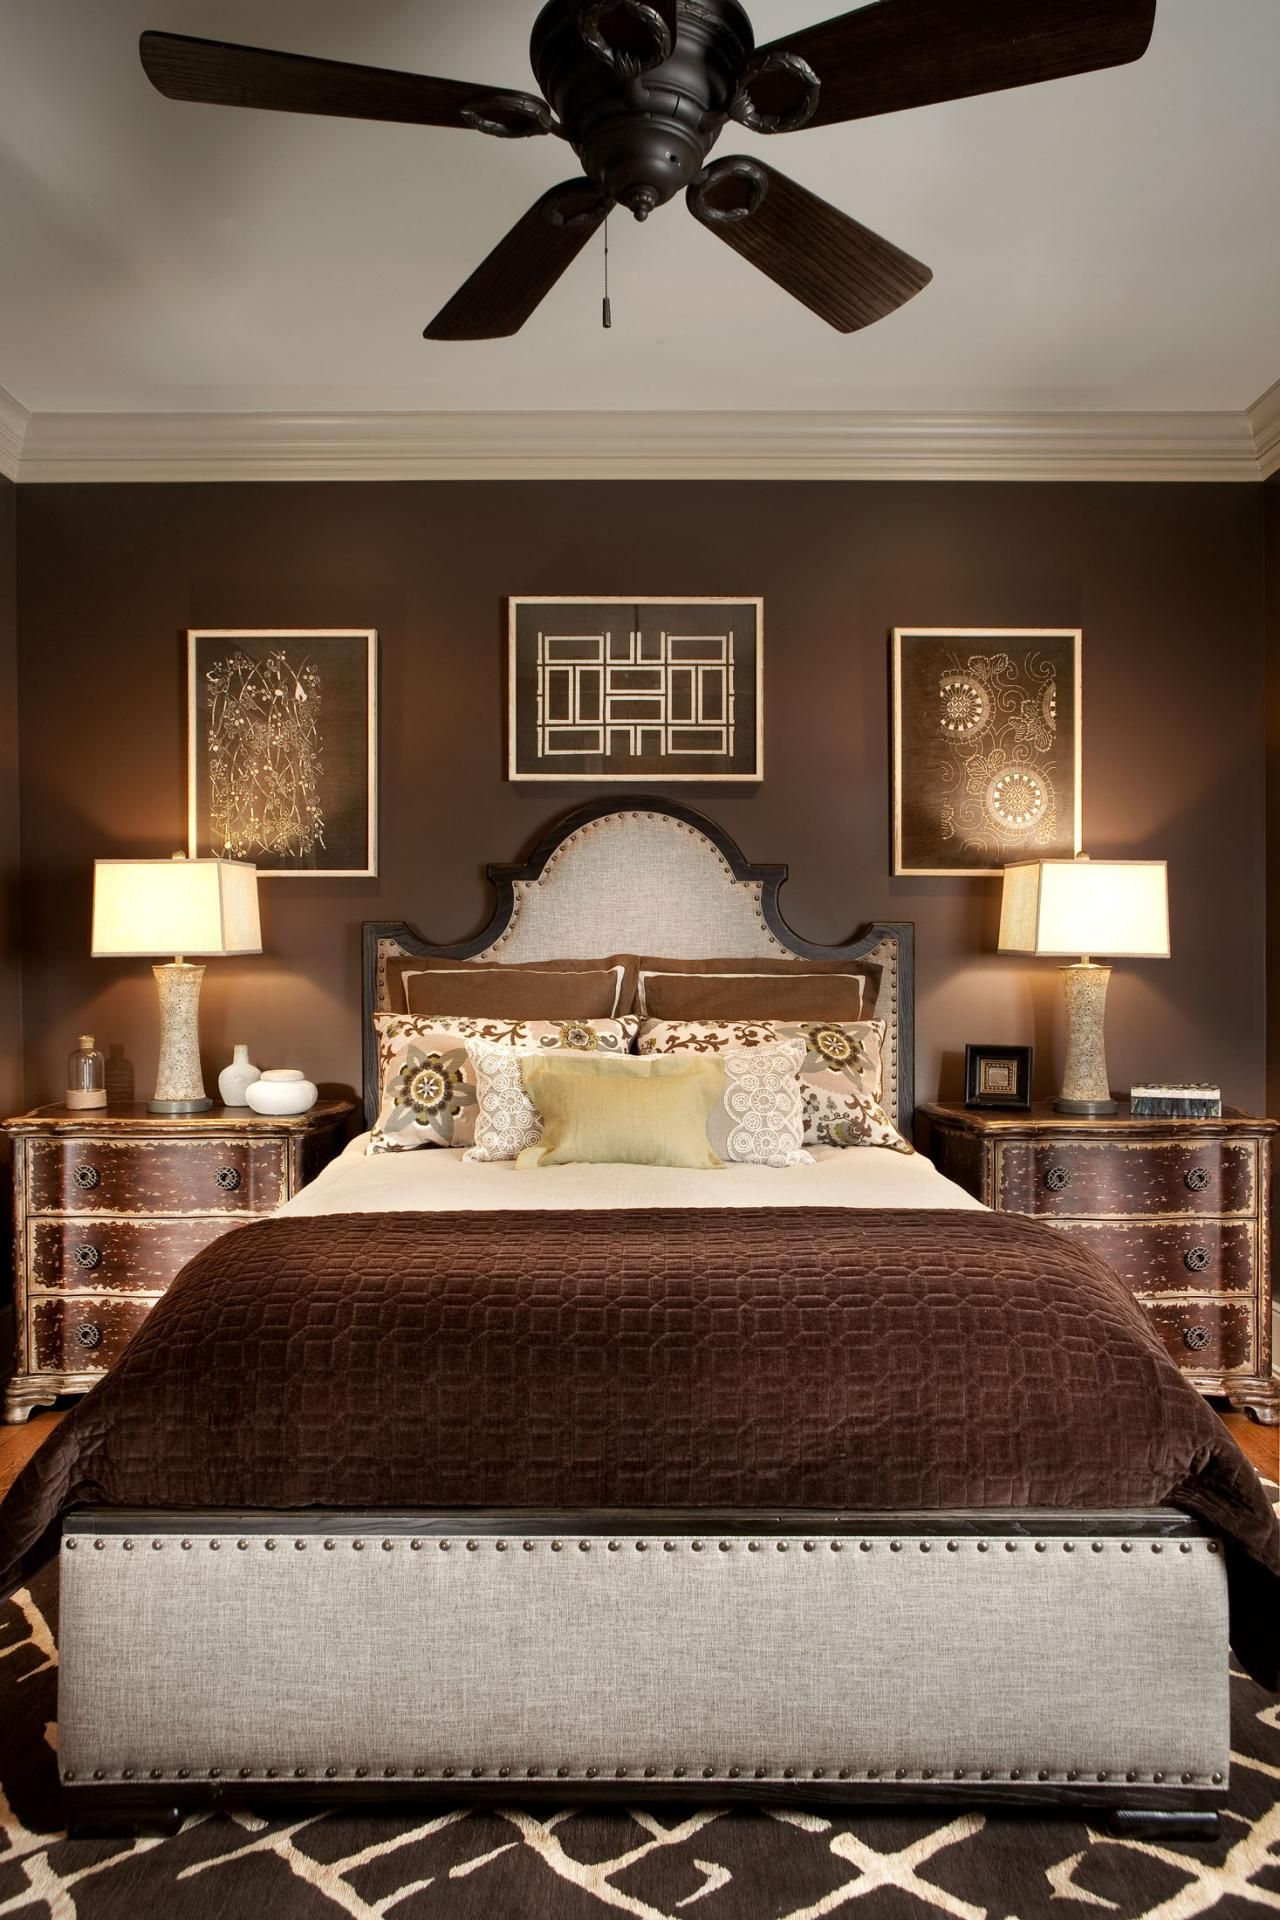 Rich chocolate brown this bedroom, including